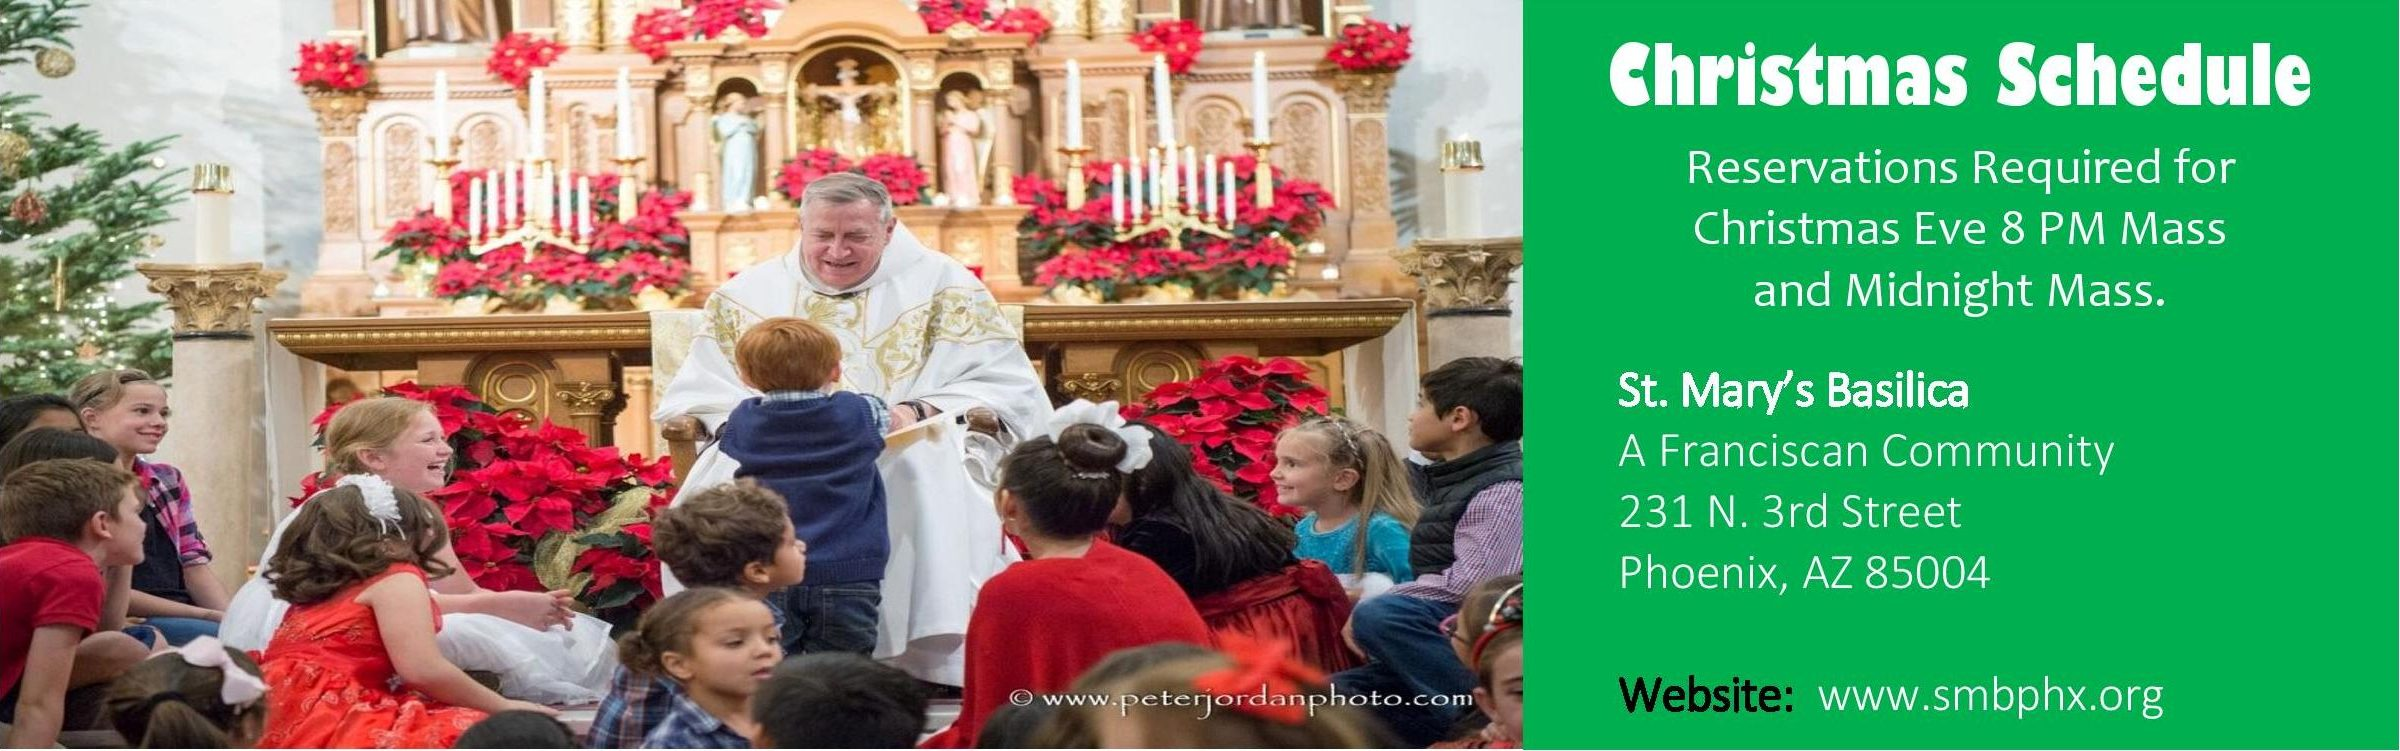 Christmas Ever Midnight Mass Schedule 2020 Advent and Christmas Schedule – St. Mary's Basilica